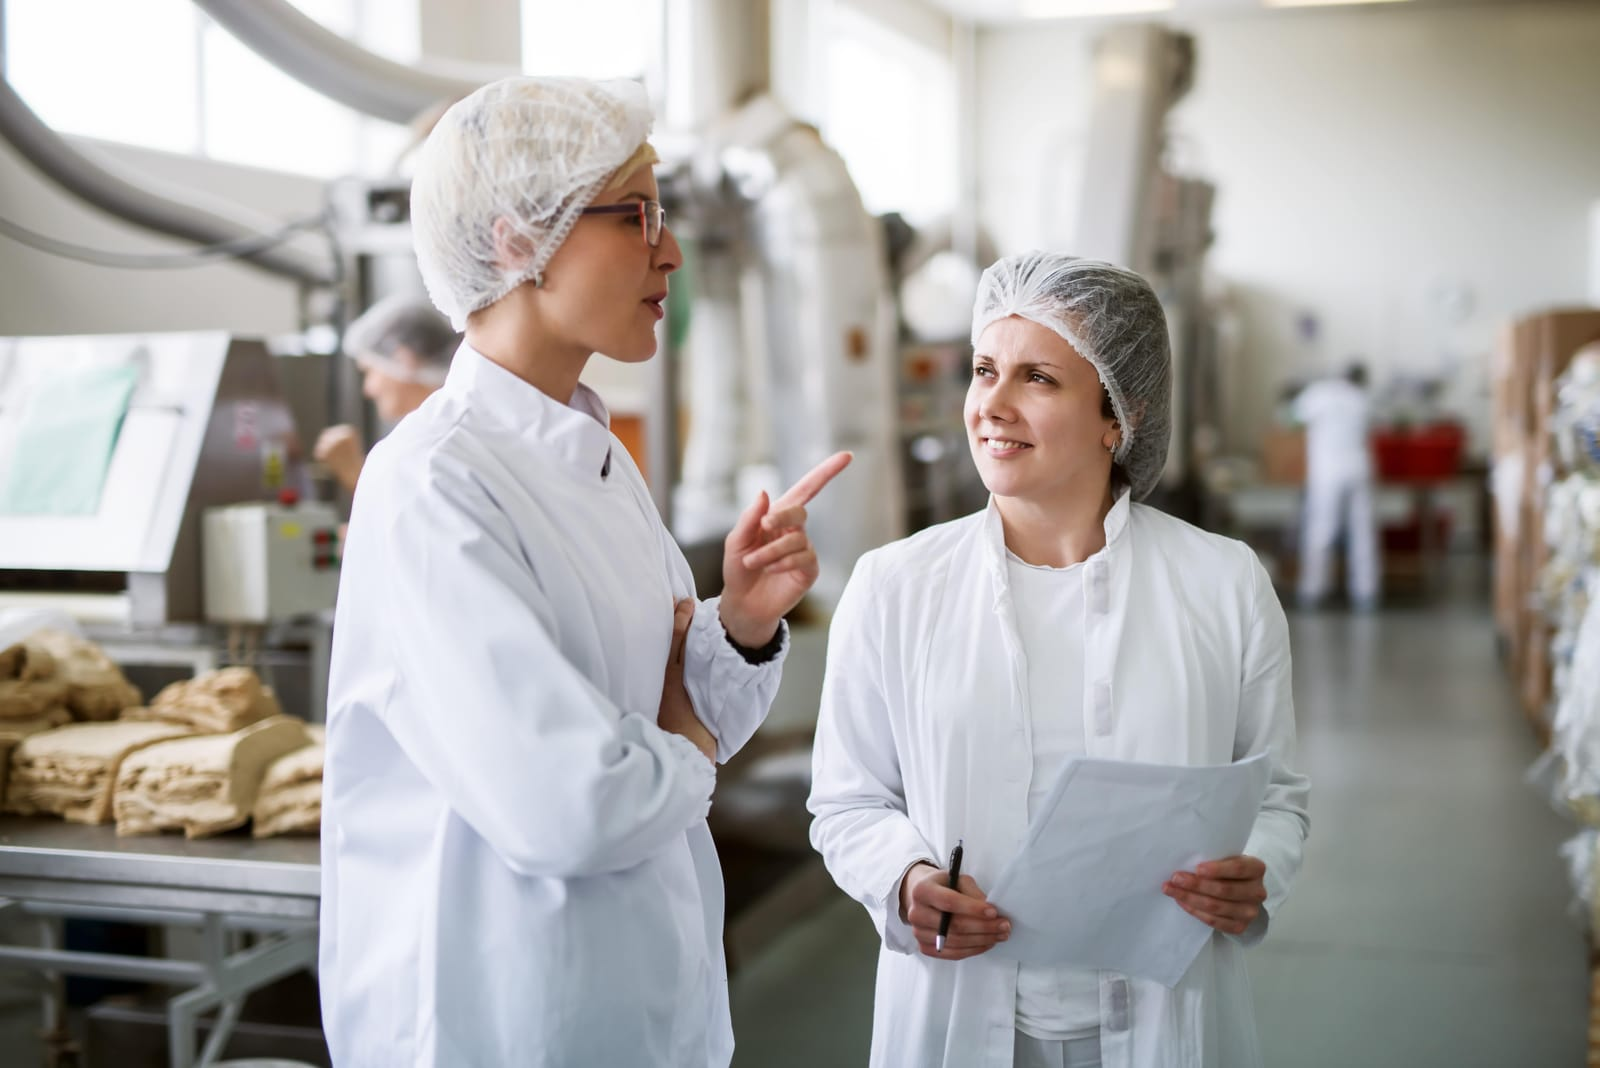 Enhancing employee experience within the food manufacturing and processing sector